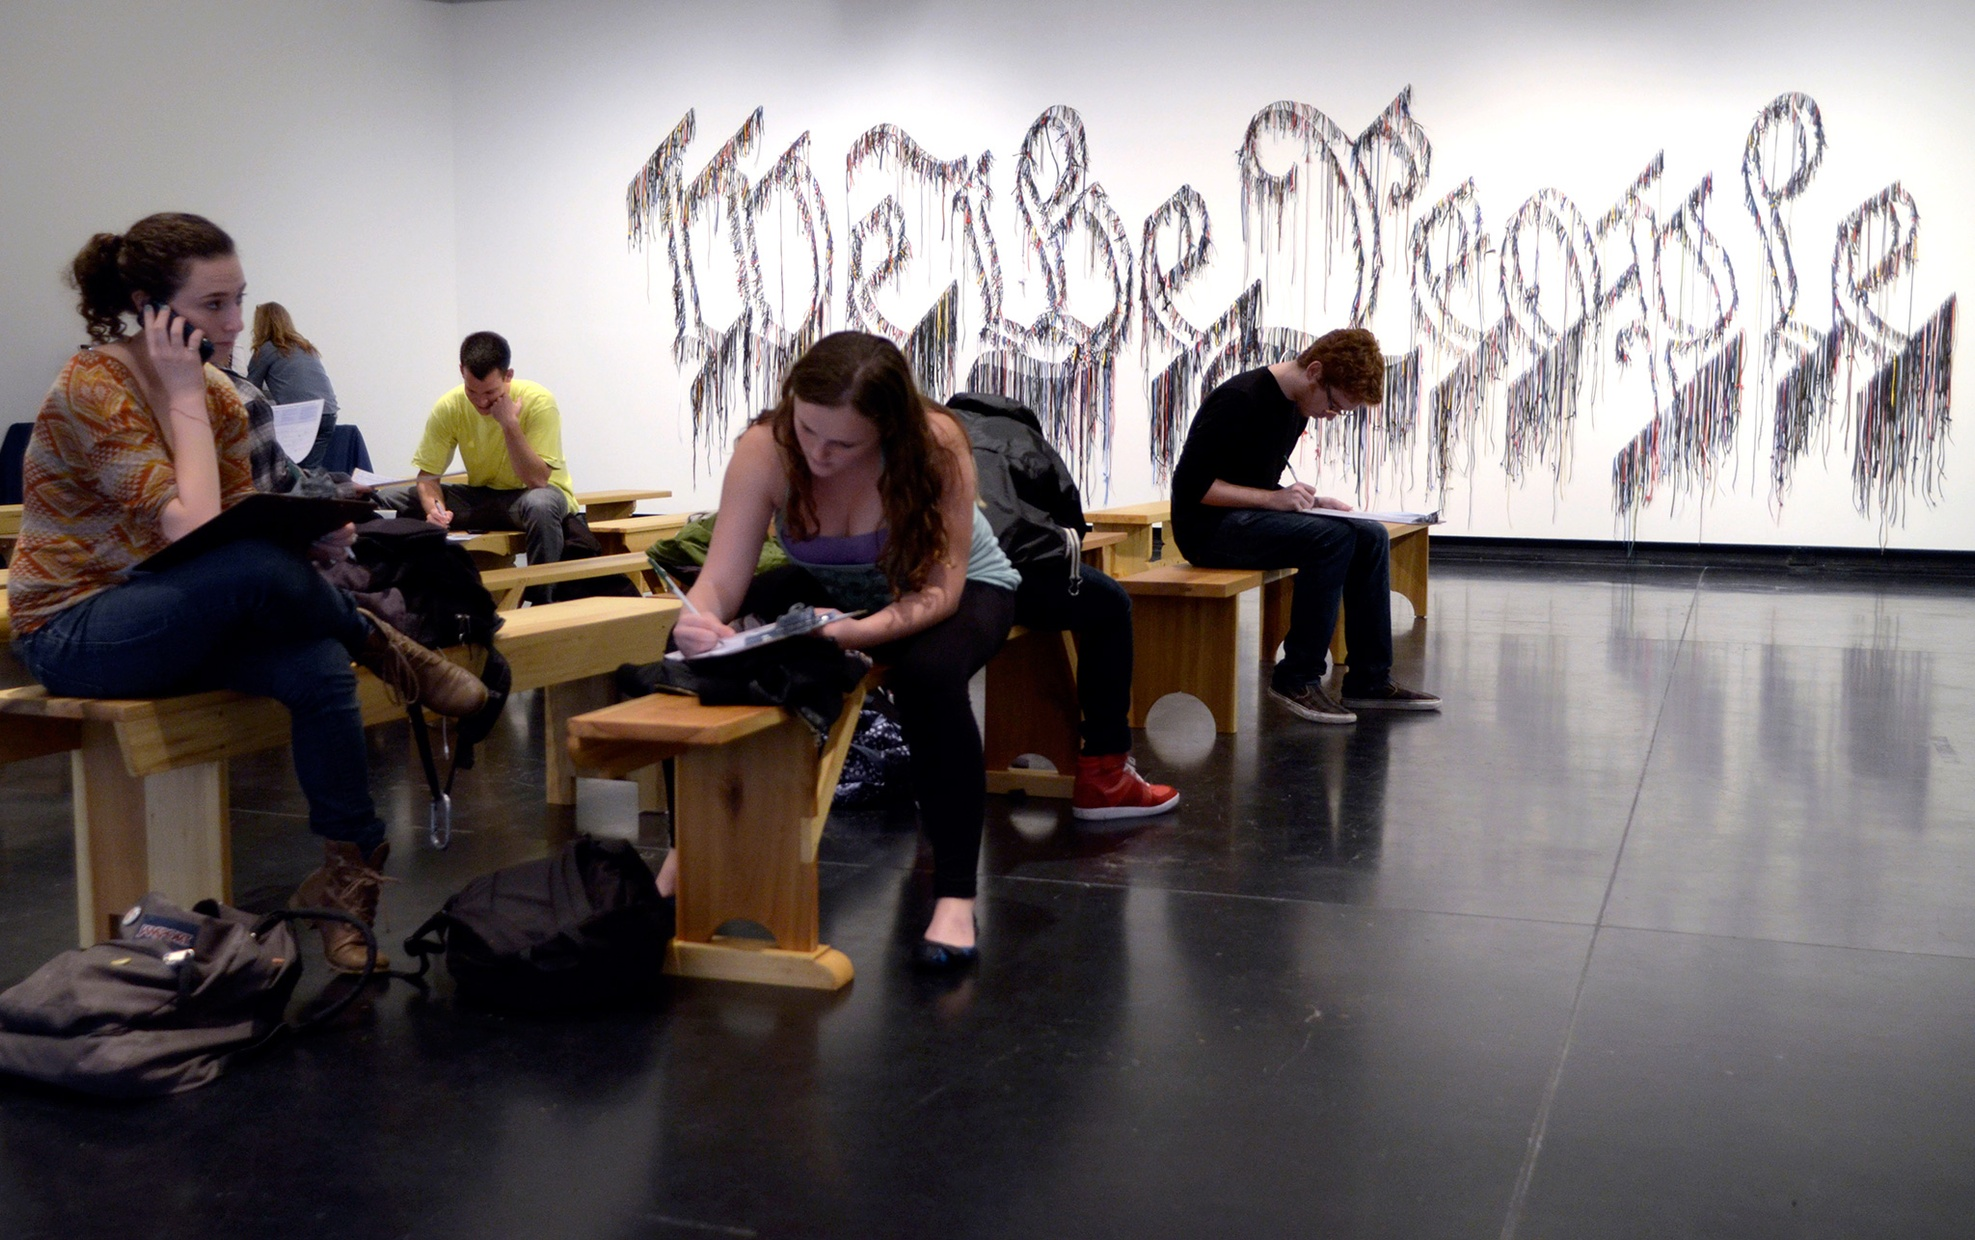 """A group of young people sit on wooden benches. On the wall behind them, """"We the People"""" is written with silver tinsel."""